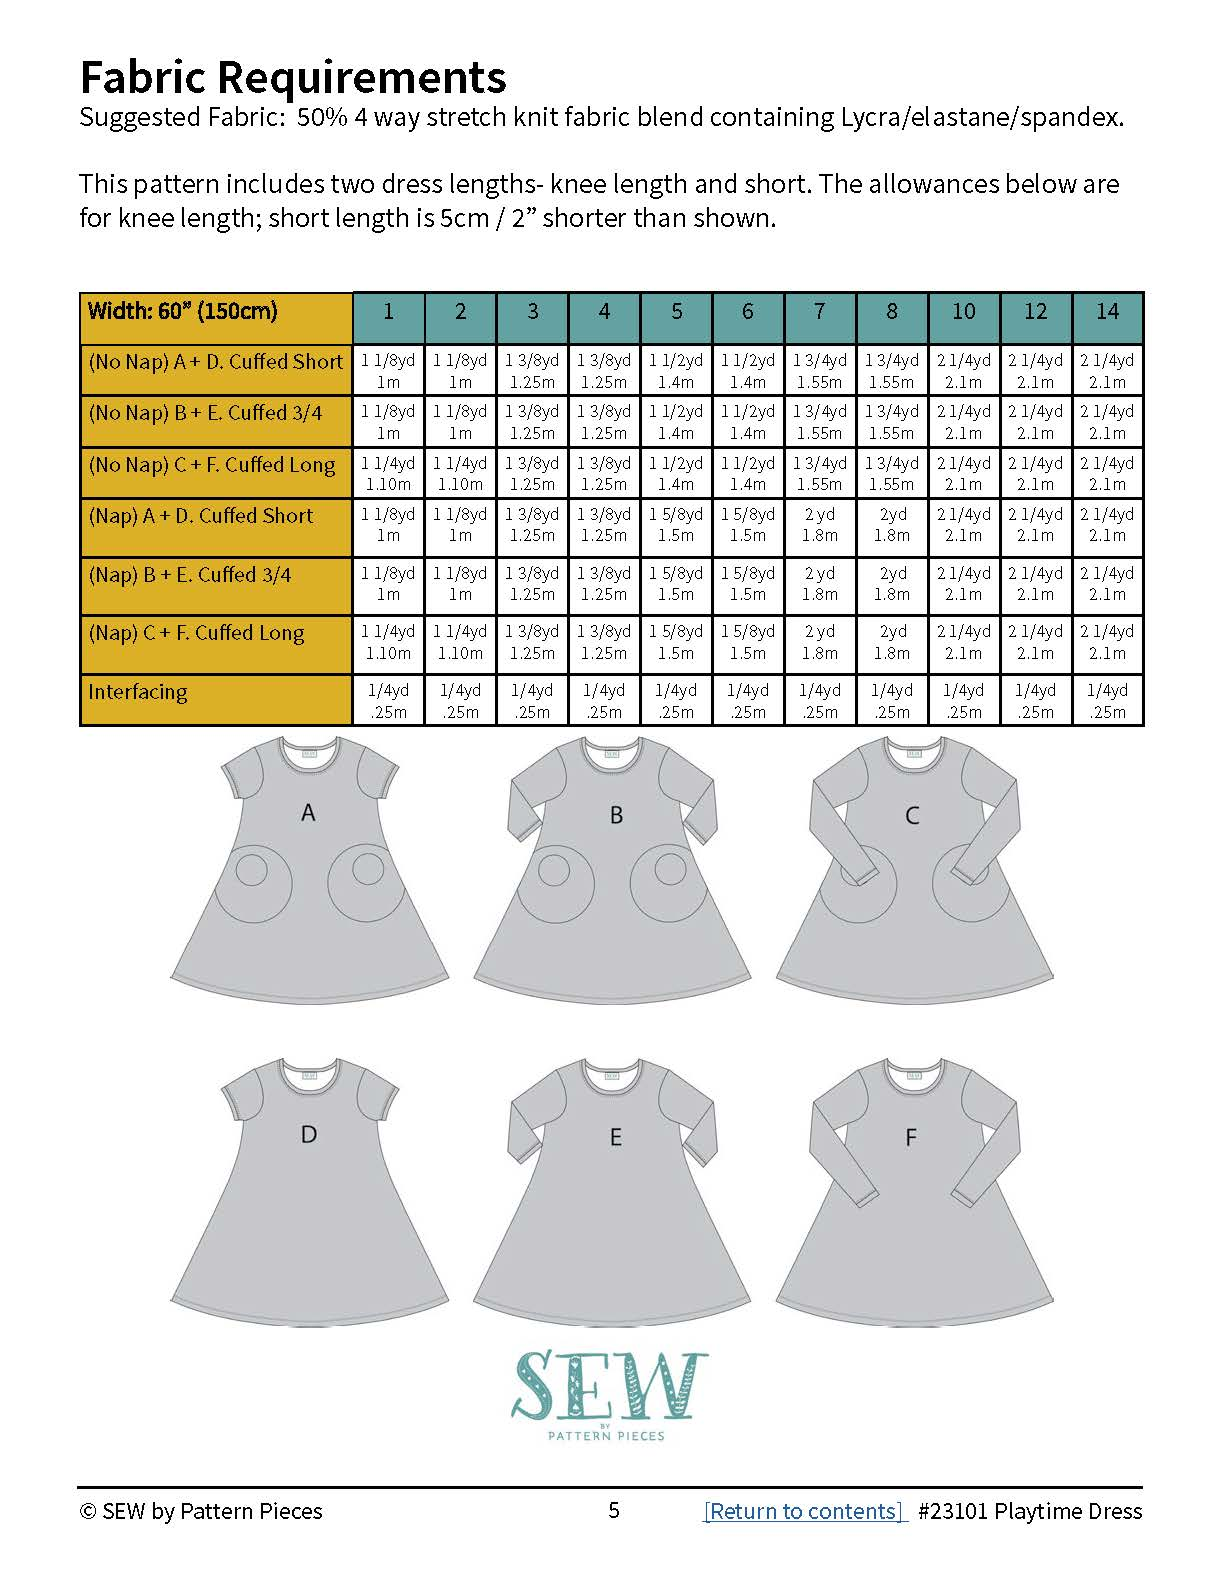 Playtime Dress fabric requirements